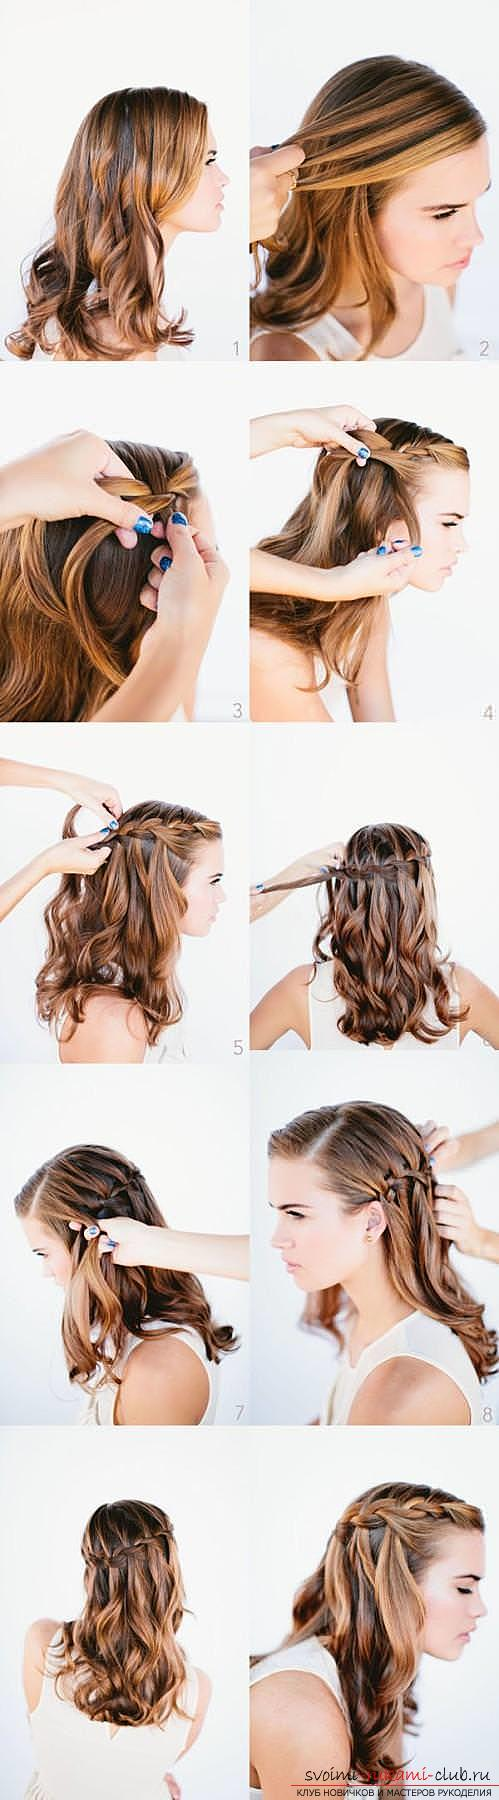 Interesting ideas for creating hairstyles with pigtails on medium hair themselves. Photo # 2